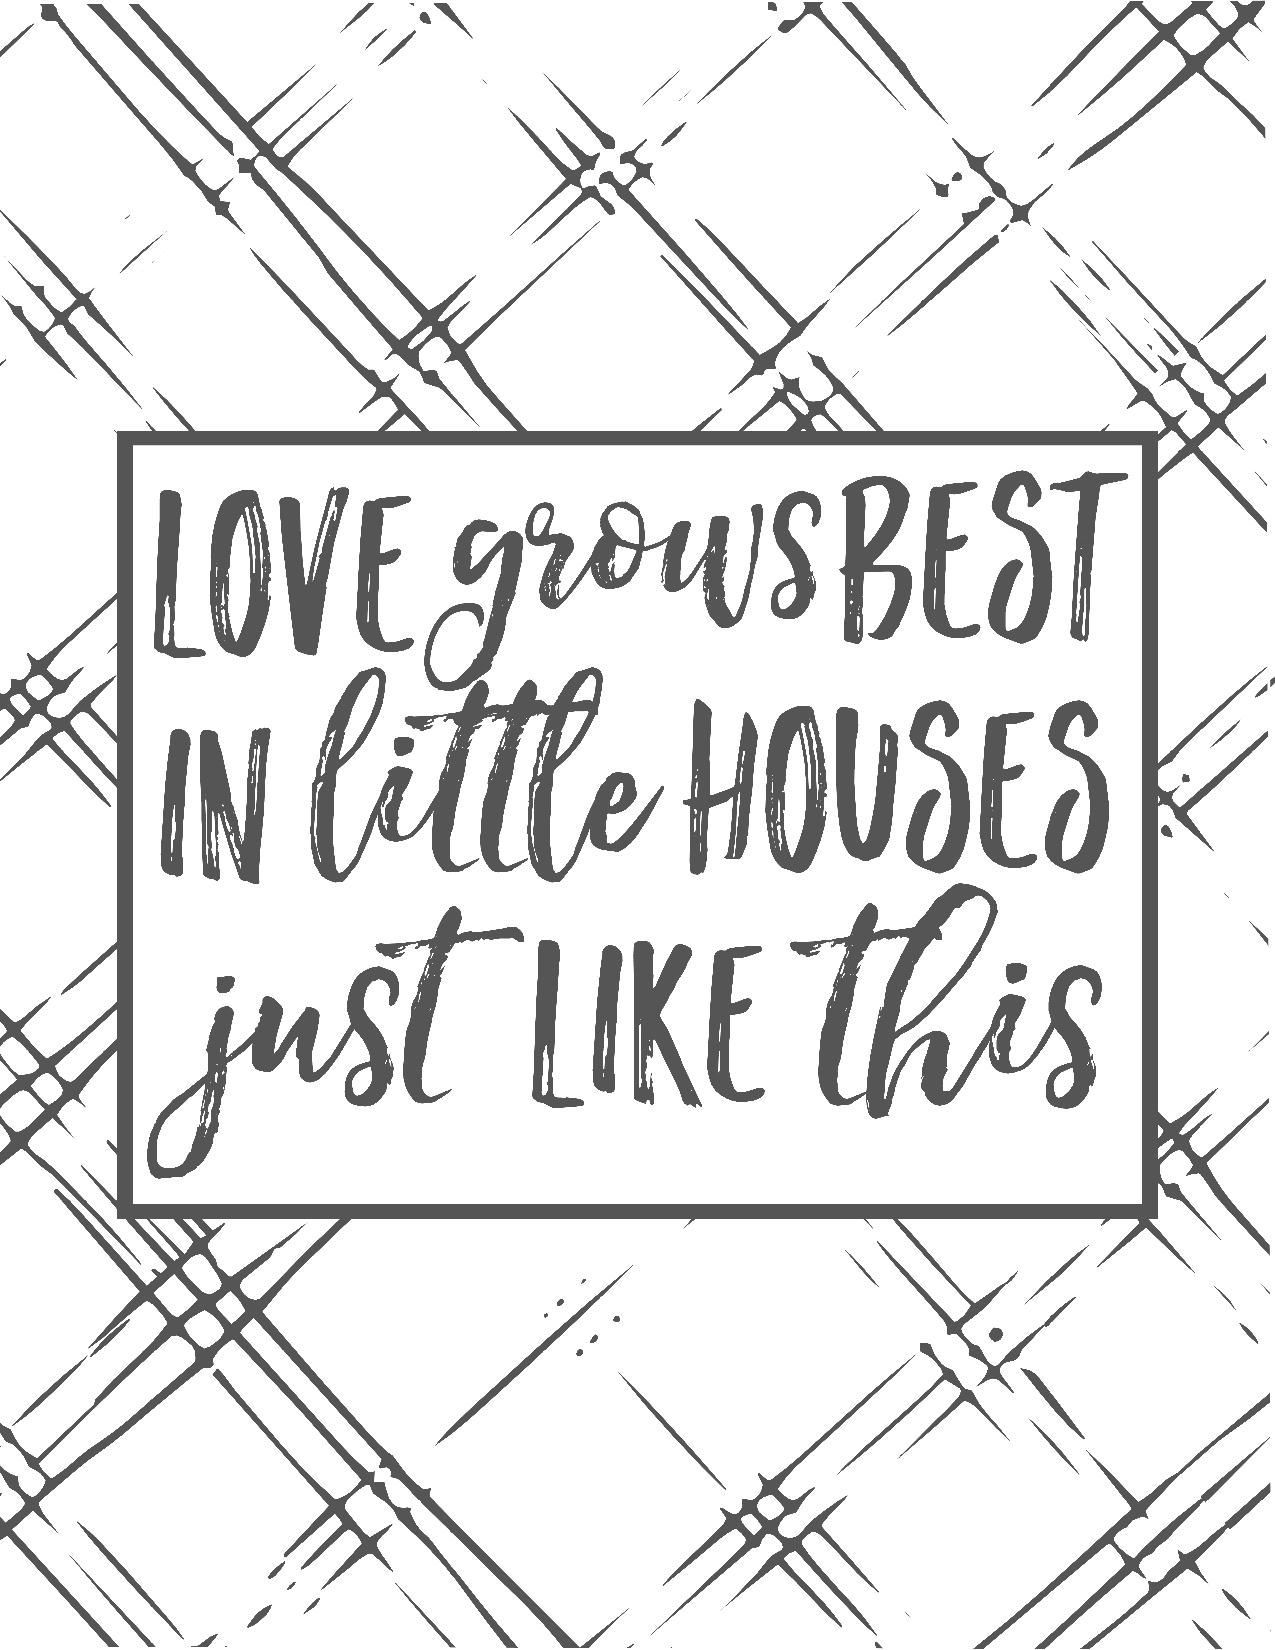 Love Grows Best In Little Houses Just Like This Free Plaid Farmhouse Printables Farmhouse Style Farmho Farmhouse Printables Little Houses Country House Decor